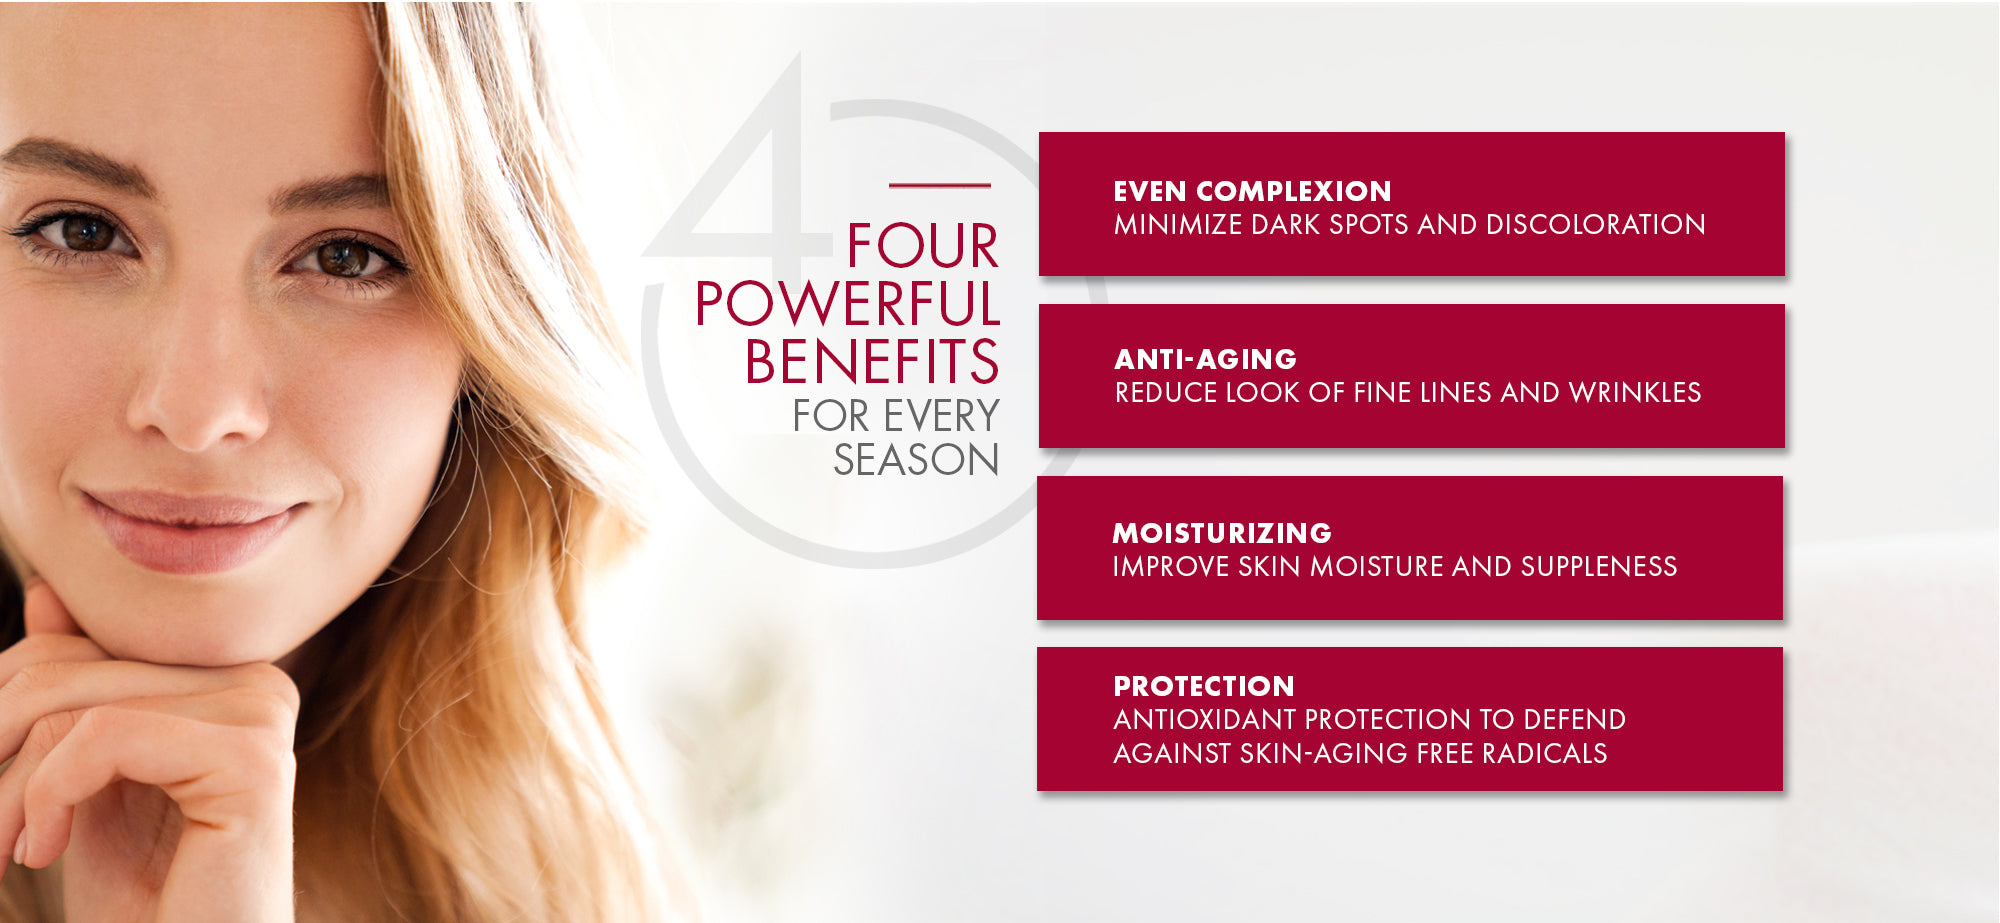 Four Powerful benefits for Every Season. Even Complex - Anti-Aging = Moisturizing - Protection.